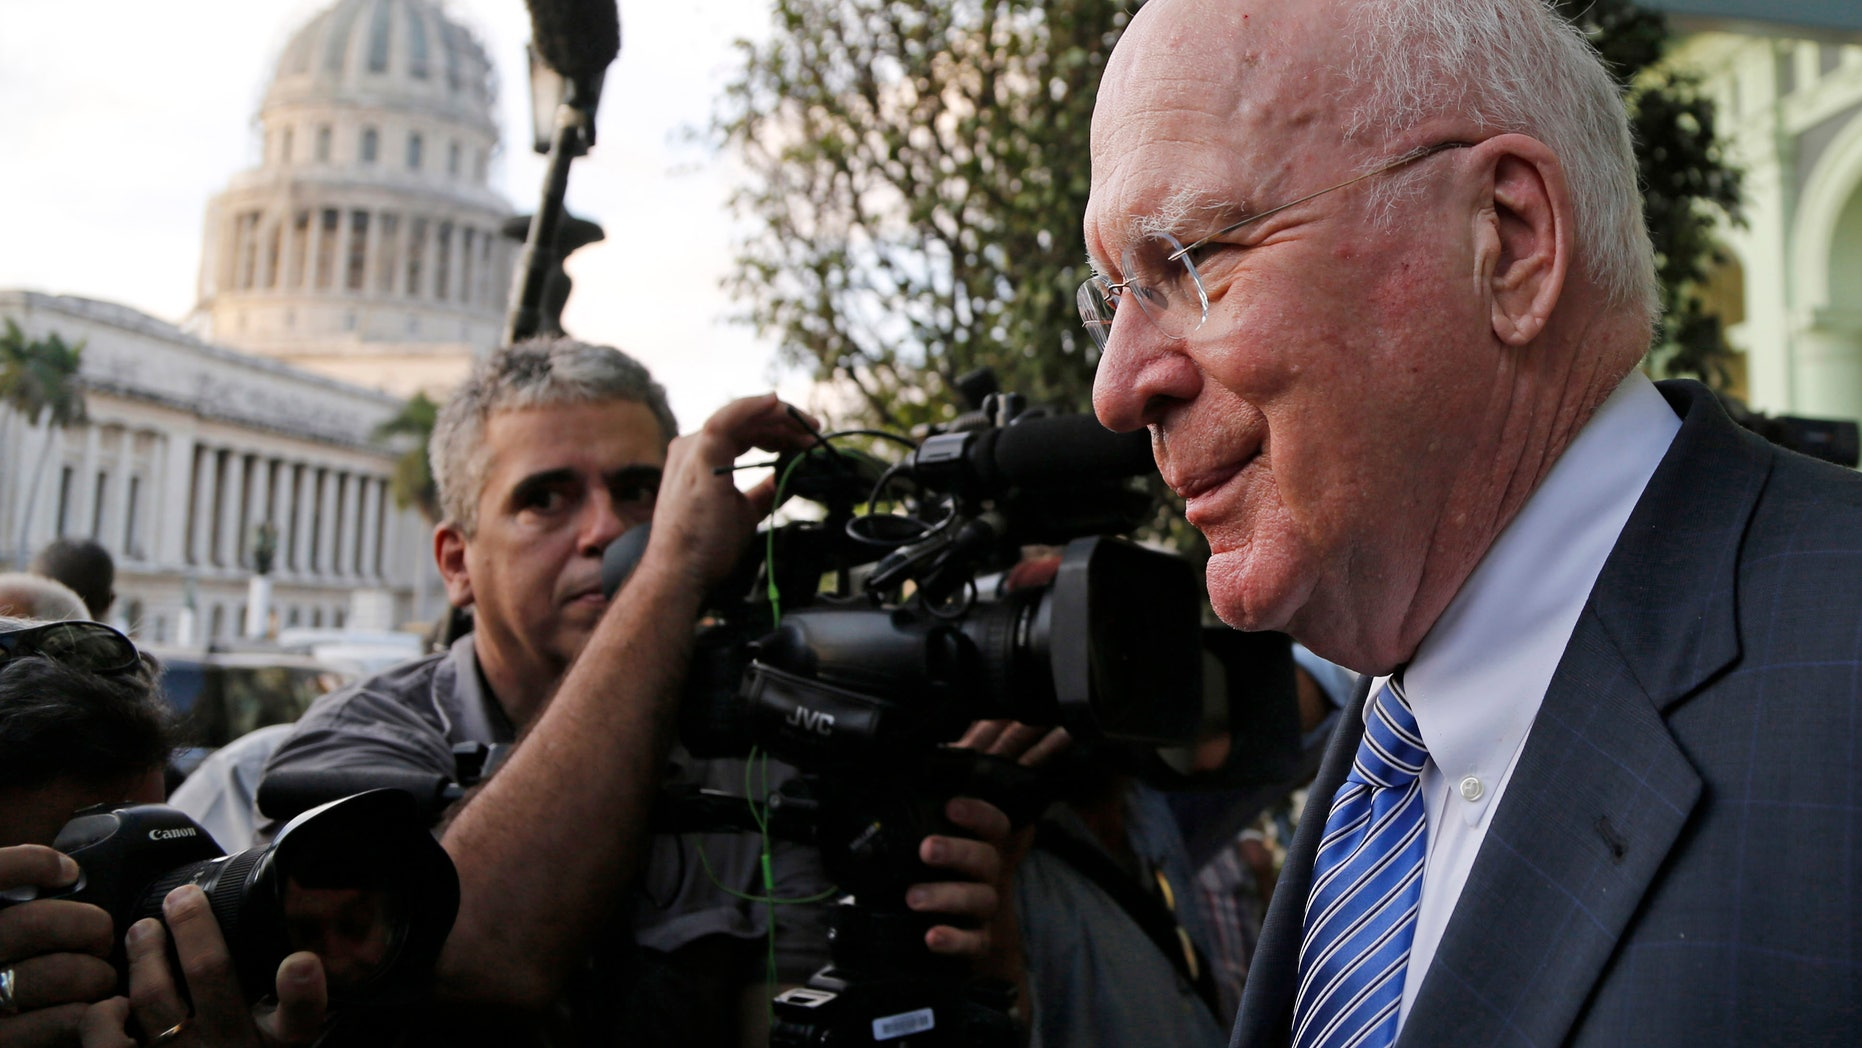 U.S. Senator Patrick Leahy from Vermont leaves after giving a press conference near the capitol building in Havana, Cuba, Monday, Jan. 19, 2015. Leahy, who is heading the first congressional delegation visit to Cuba since President Barack Obama announced in December plans for renewed relations with Cuba, met with Castro on past trips to Cuba but did not do so again on Monday, two days before Assistant Secretary of State Roberta Jacobson arrives in Havana to negotiate the reopening of the U.S. Embassy. (AP Photo/Desmond Boylan)